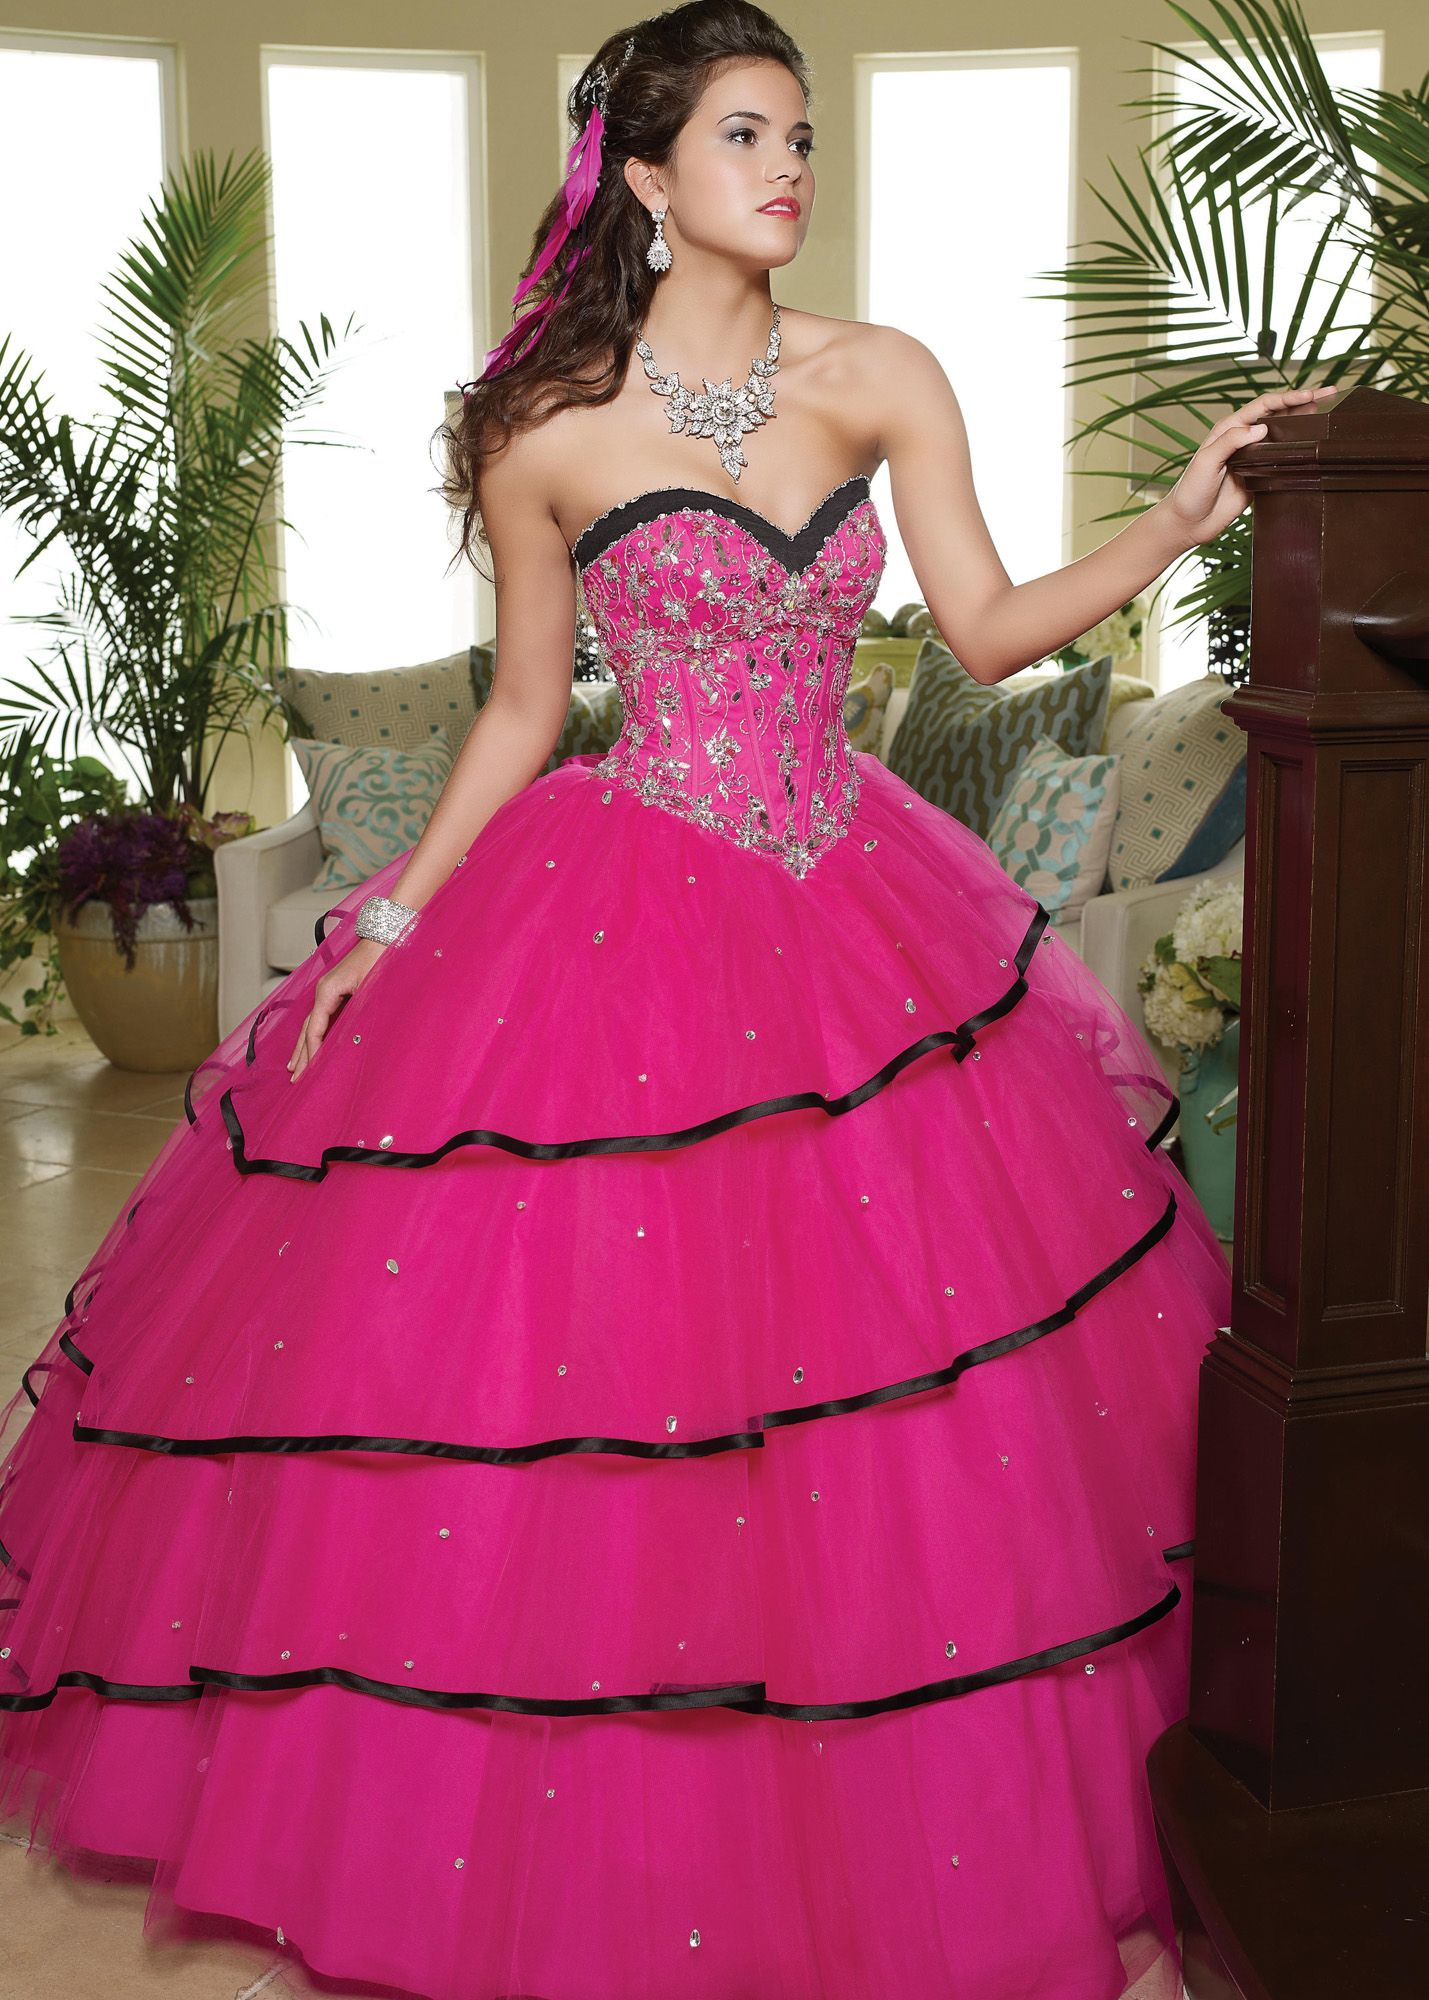 Free shipping on Vizcaya by Mori Lee 88026 pink and black strapless ...